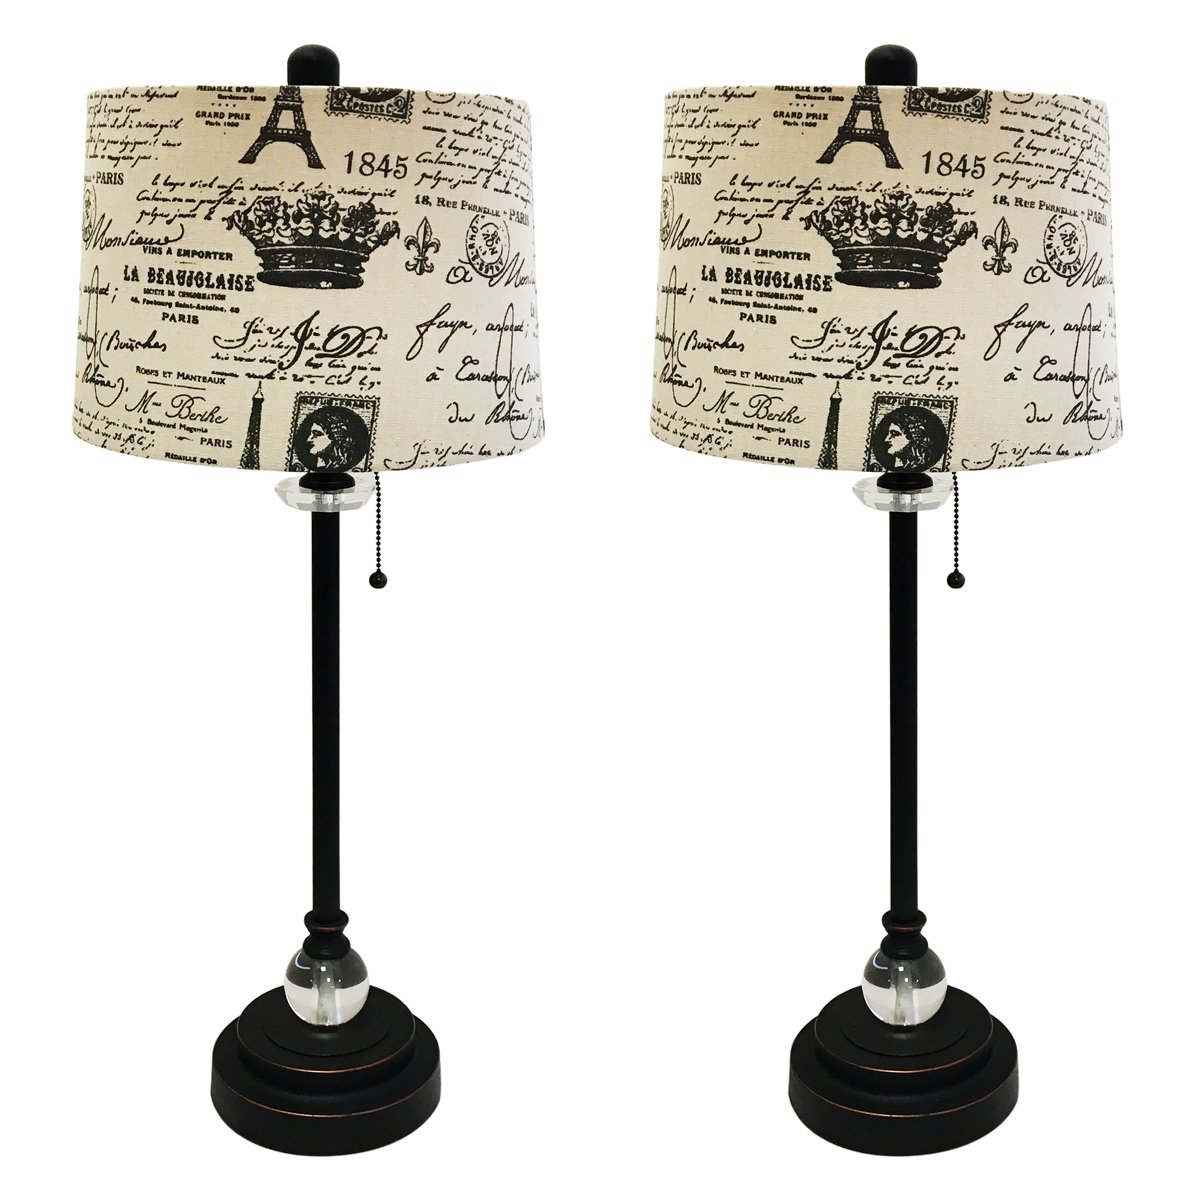 Royal Designs 28'' Crystal and Oil Rub Bronze Lamp with Eggshell and Black Vintage French Print Drum Hardback Lamp Shade, Set of 2 by Royal Designs, Inc